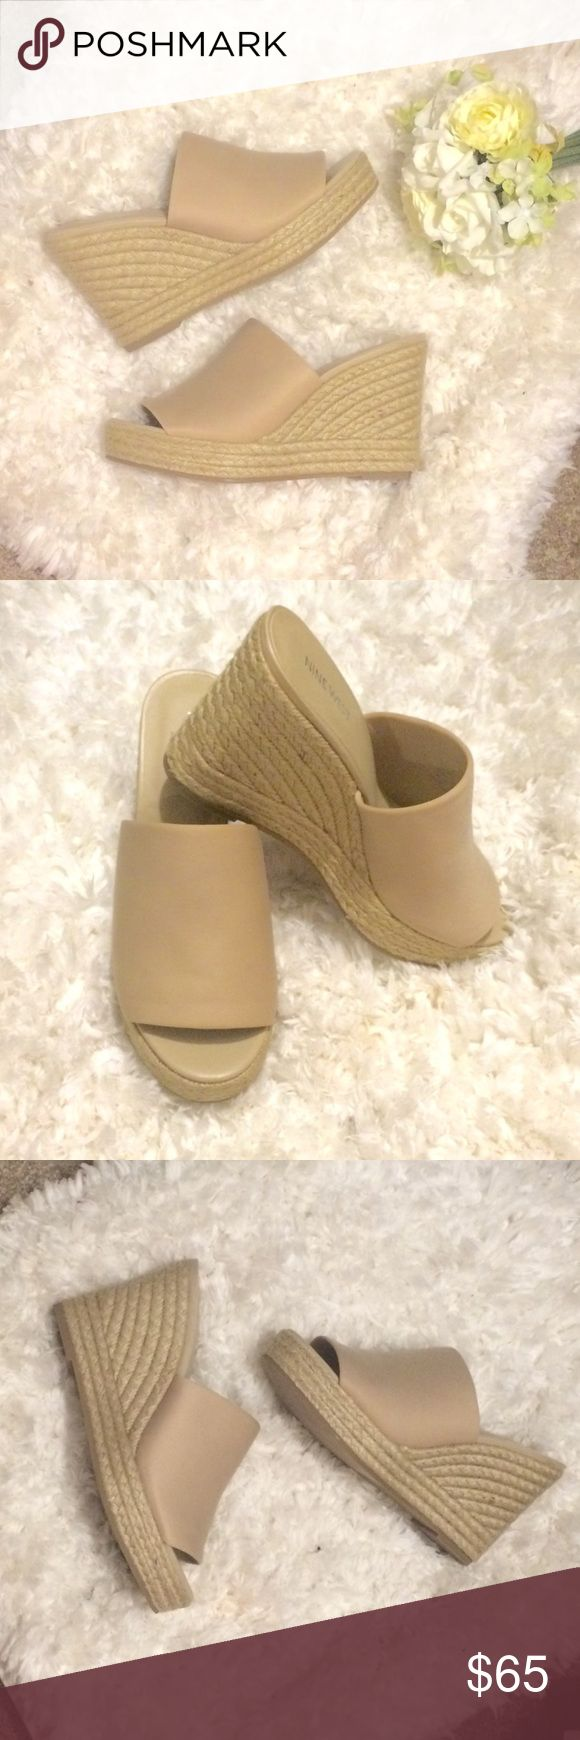 Nine West Nude espadrille wedge sandal Brand new Nine West Nude espadrille wedge sandal. Perfect for any outfit - dress up or down. Nine West Shoes Espadrilles